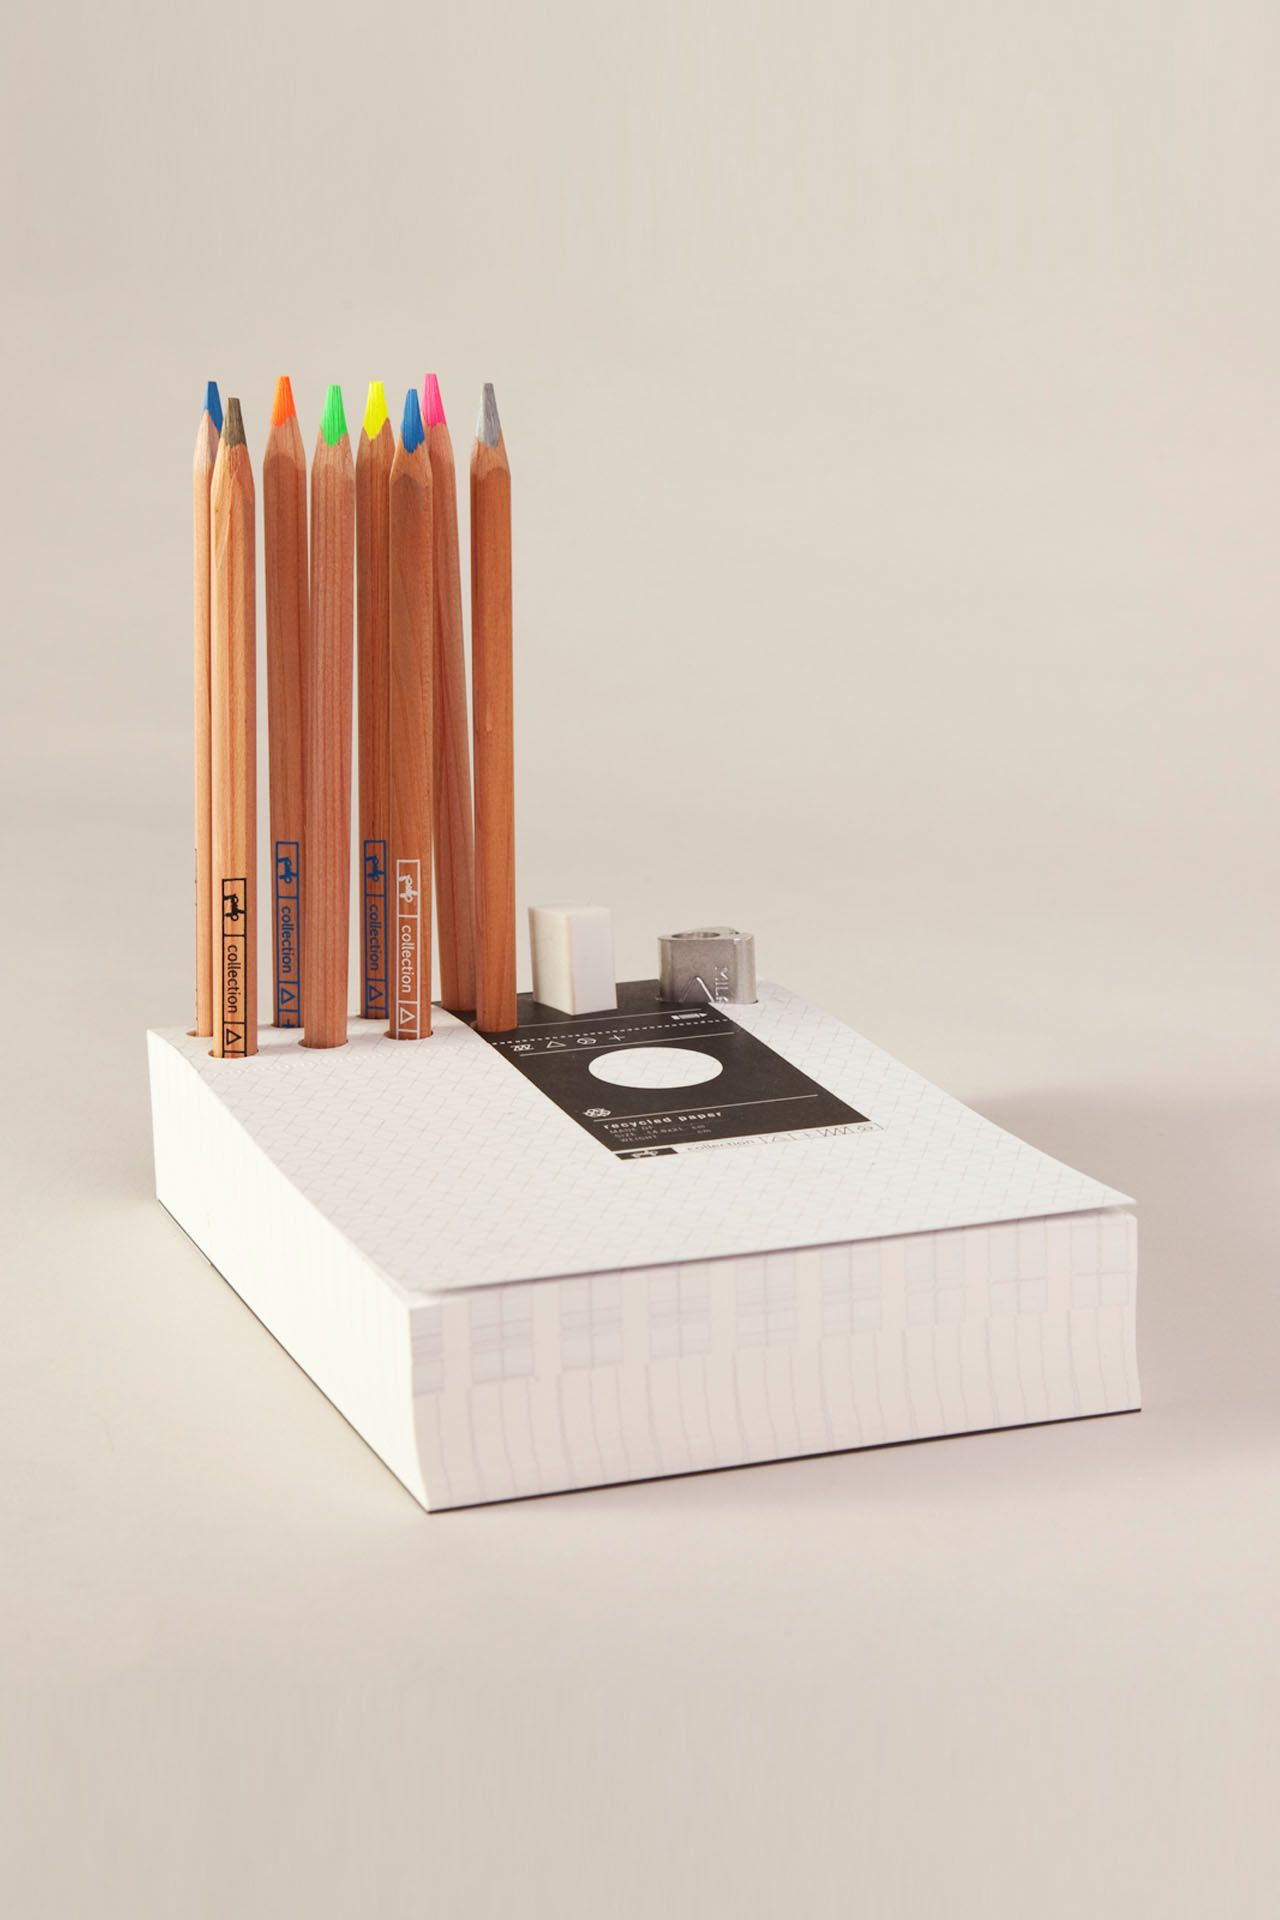 Jumbo Color Pencil Block A5 Paper That Organize Your Tabletop Handwriting Tools Print Grid